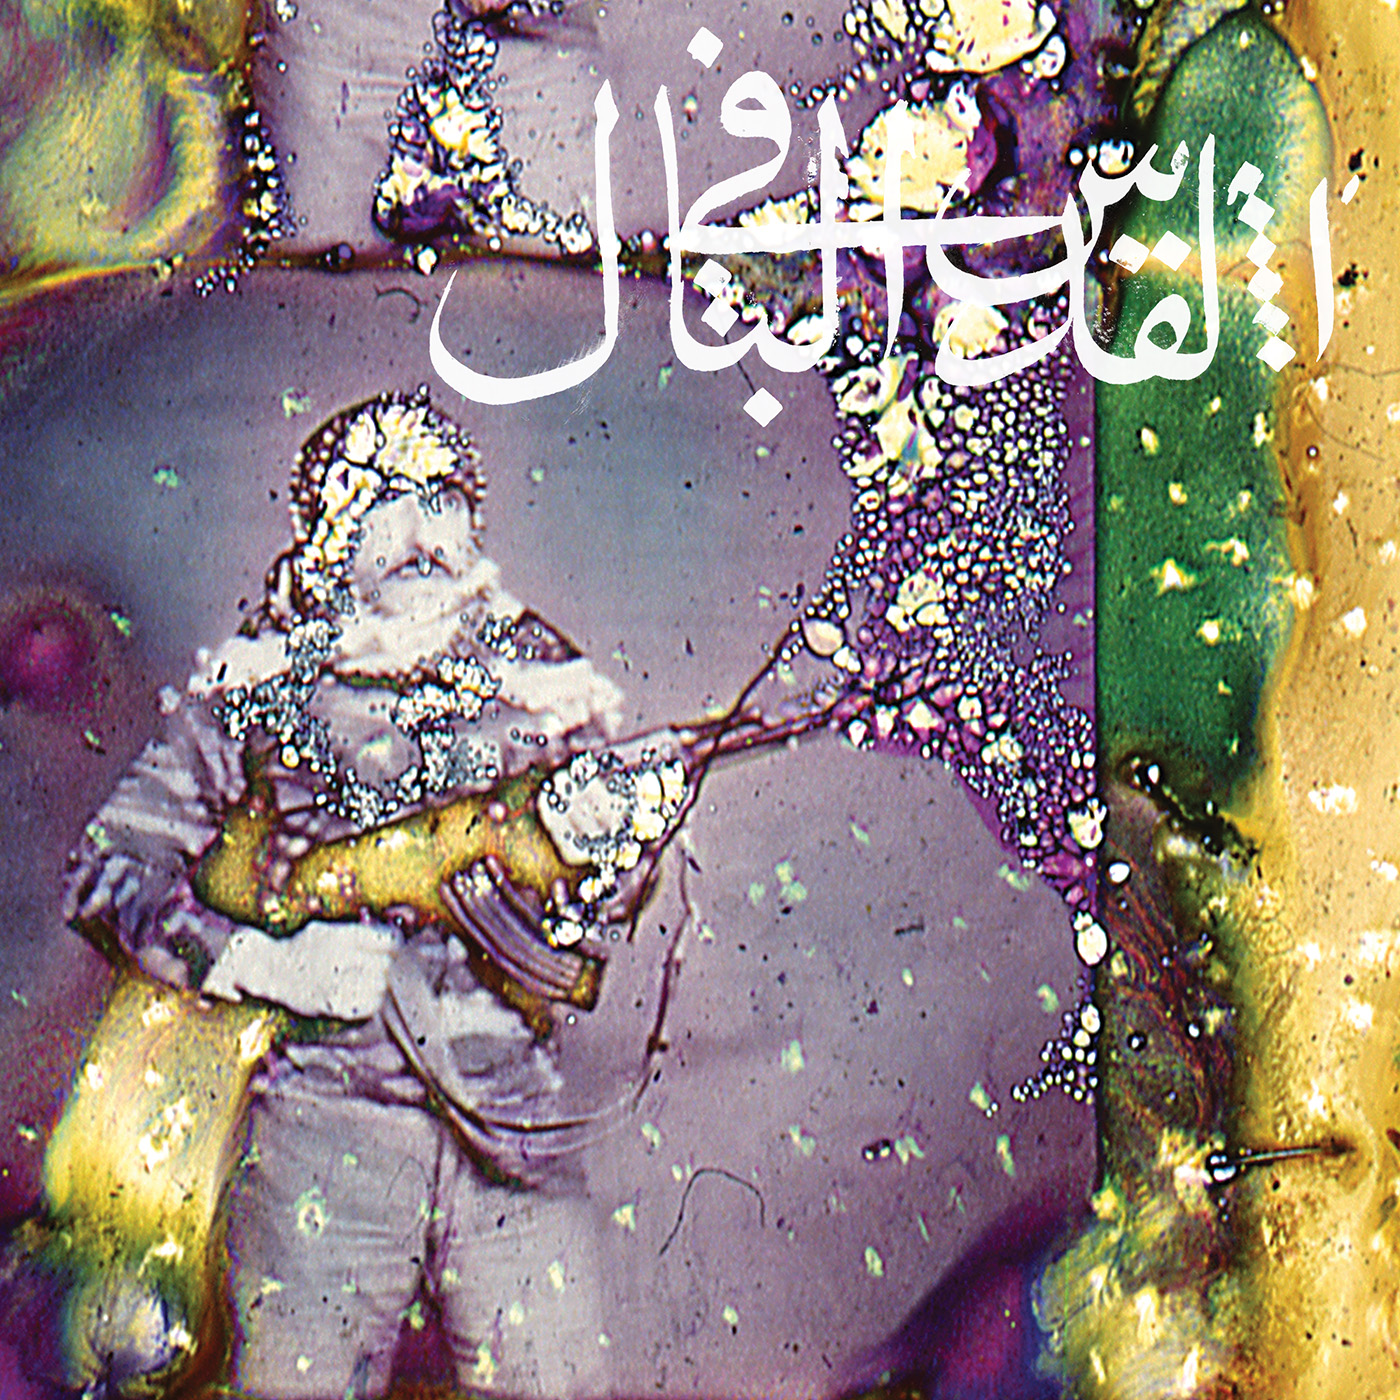 Jerusalem In My Heart release new album 'Daqa'iq Tudaiq', co-commissioned by Le Guess Who?